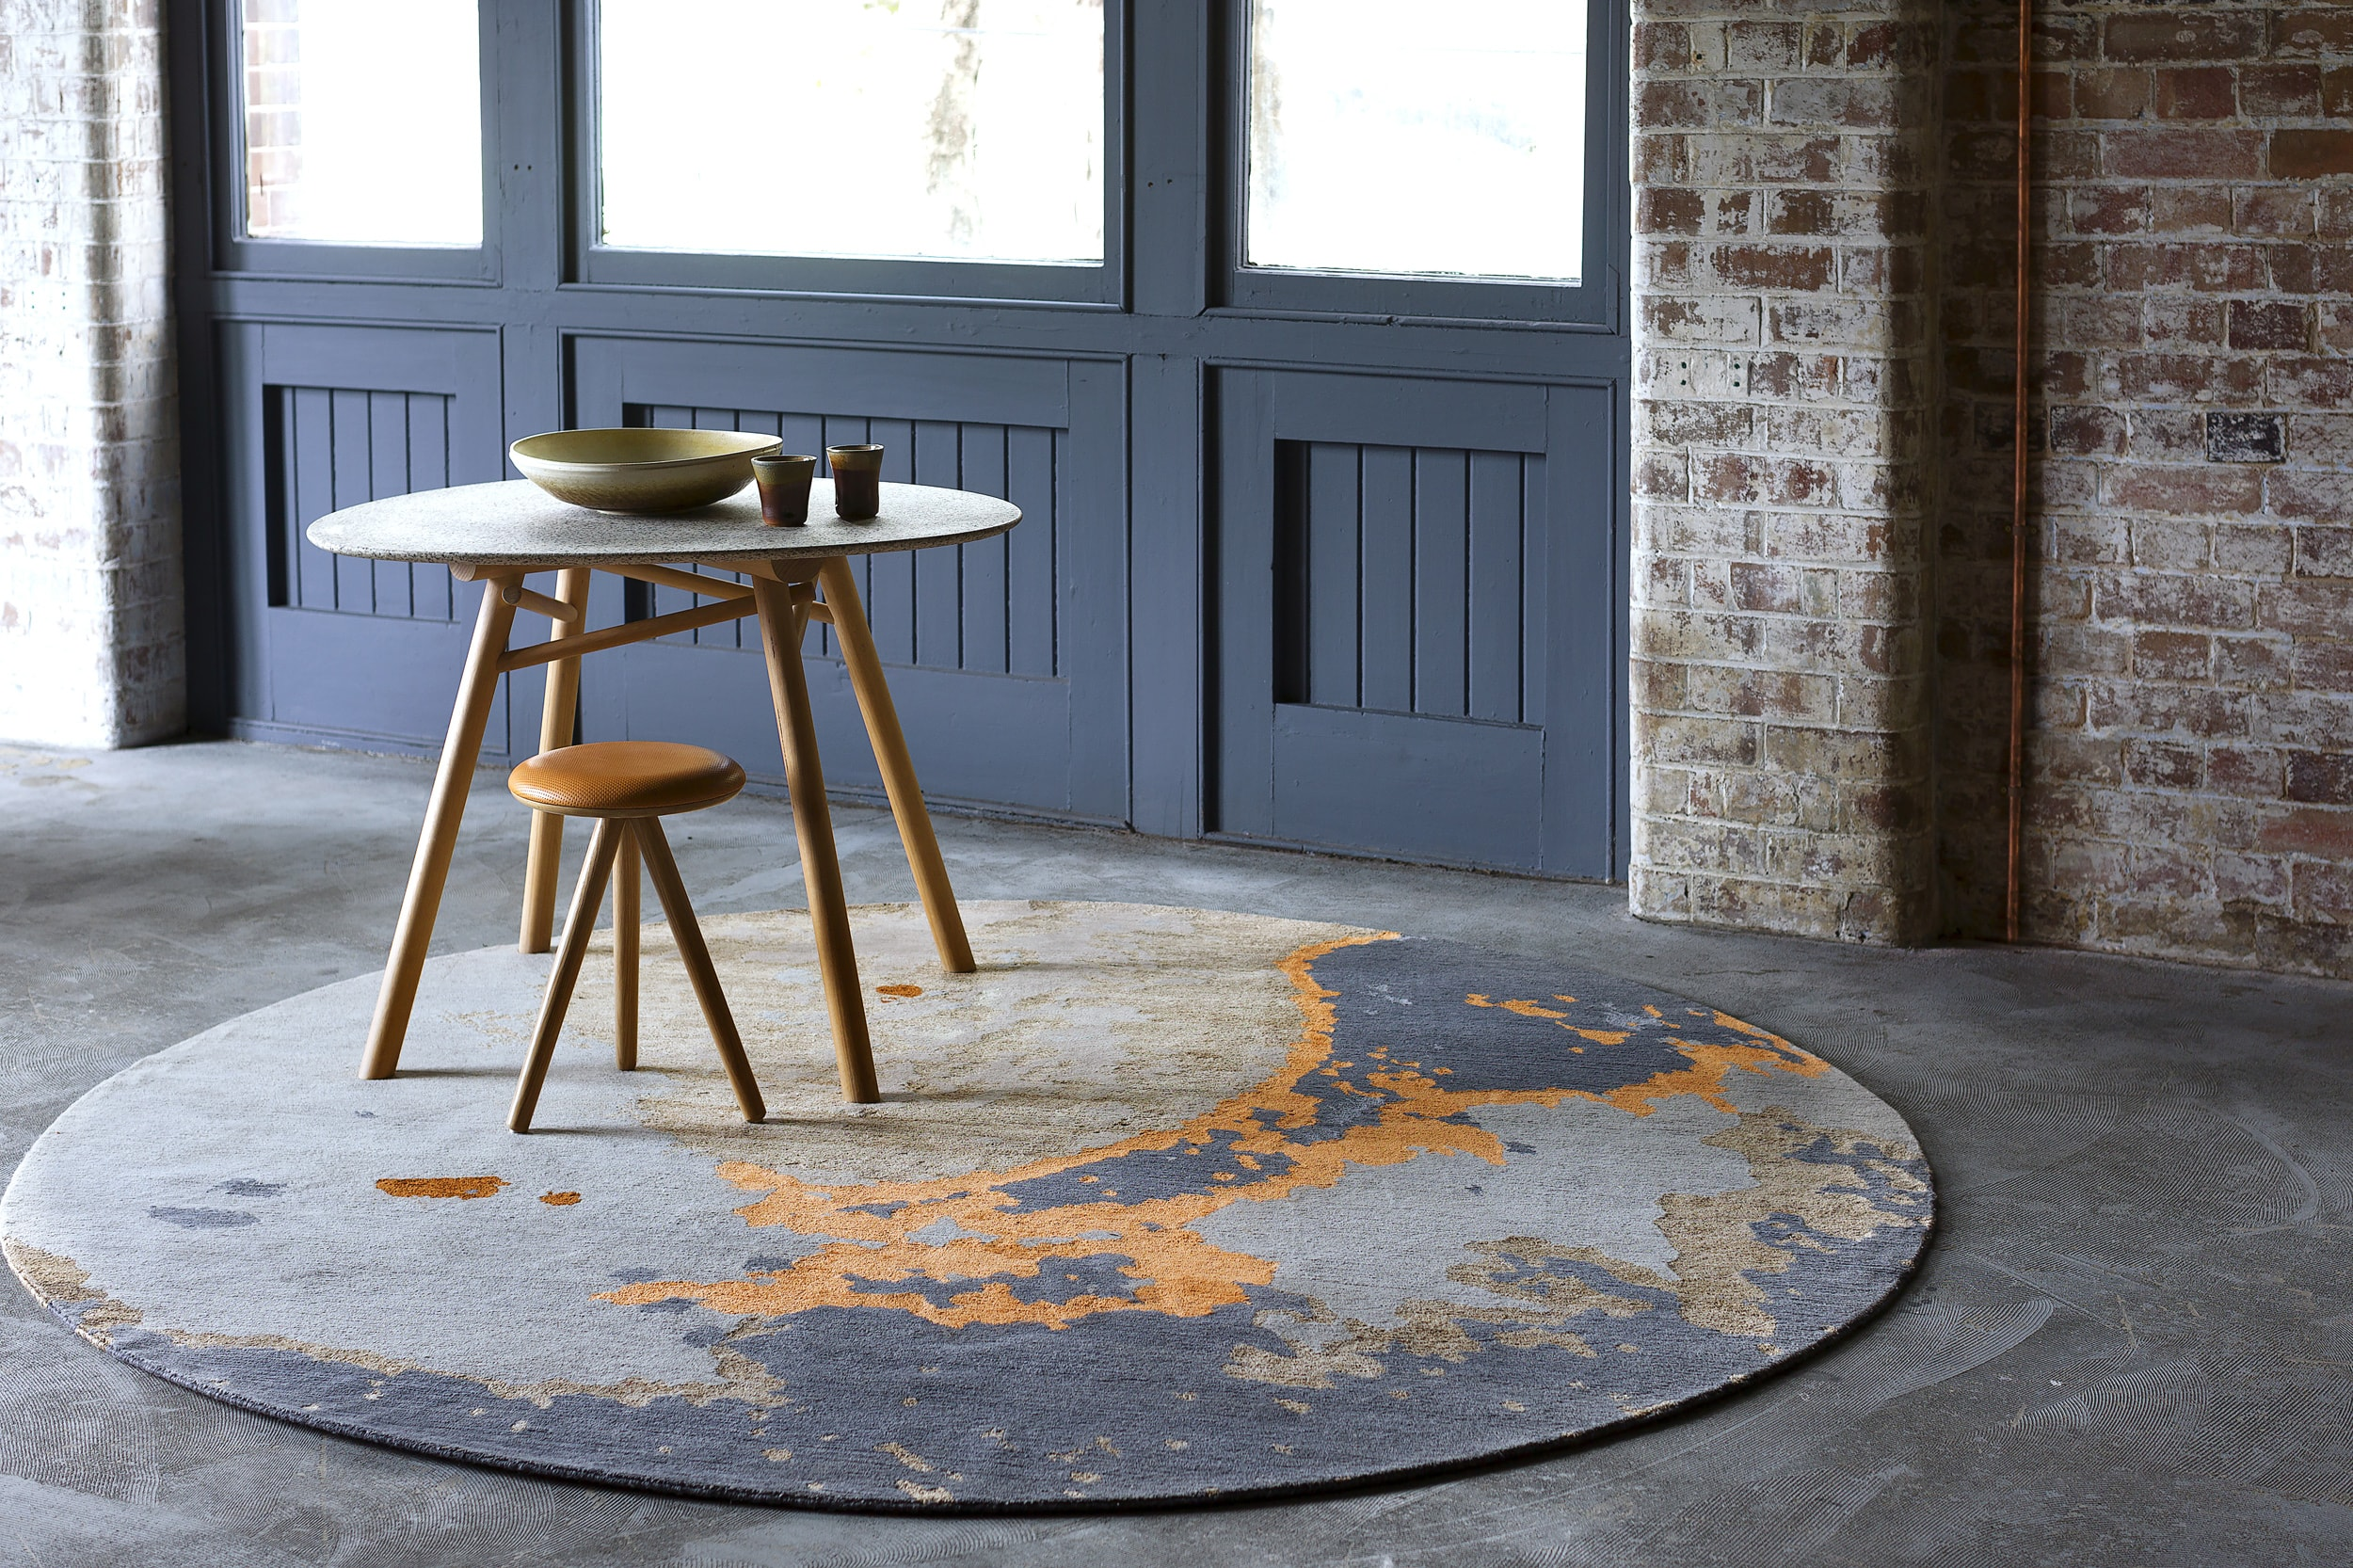 Designer Rugs Launch New Collection In Collaboration With Hare And Klein Collection Feature Australiaaceto Landscape Edit 2 Min